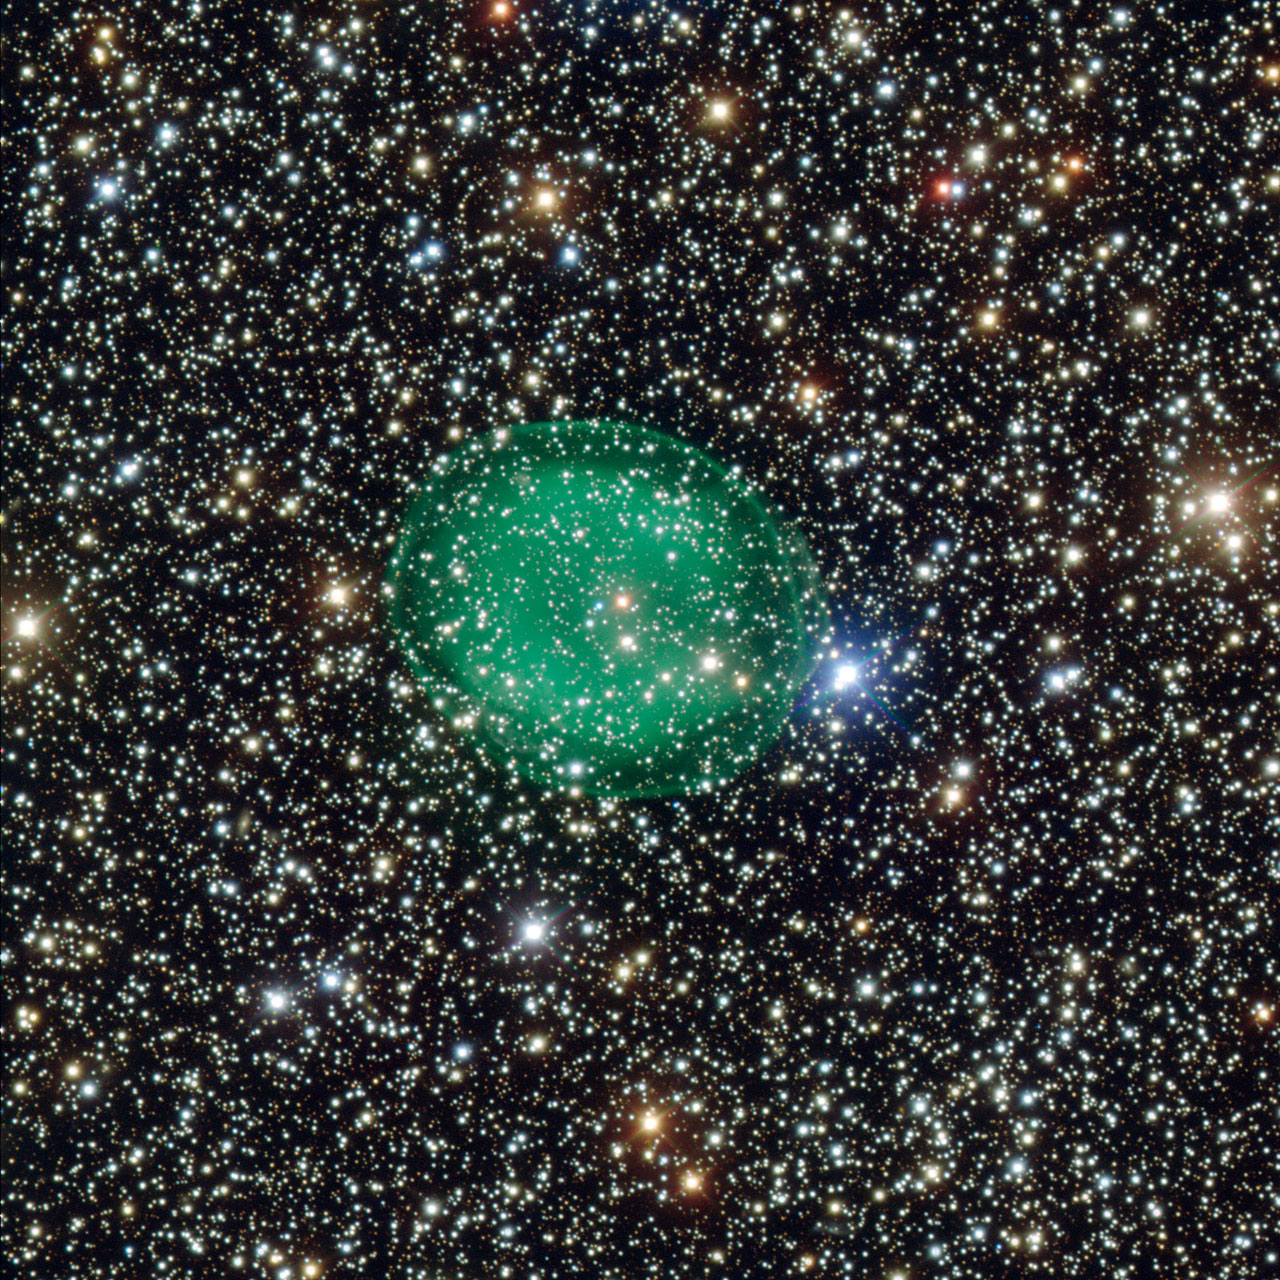 The glowing green planetary nebula IC 1295 surrounding a dim and dying star some 3,300 light-years away. View larger. Image via ESO's Very Large Telescope.